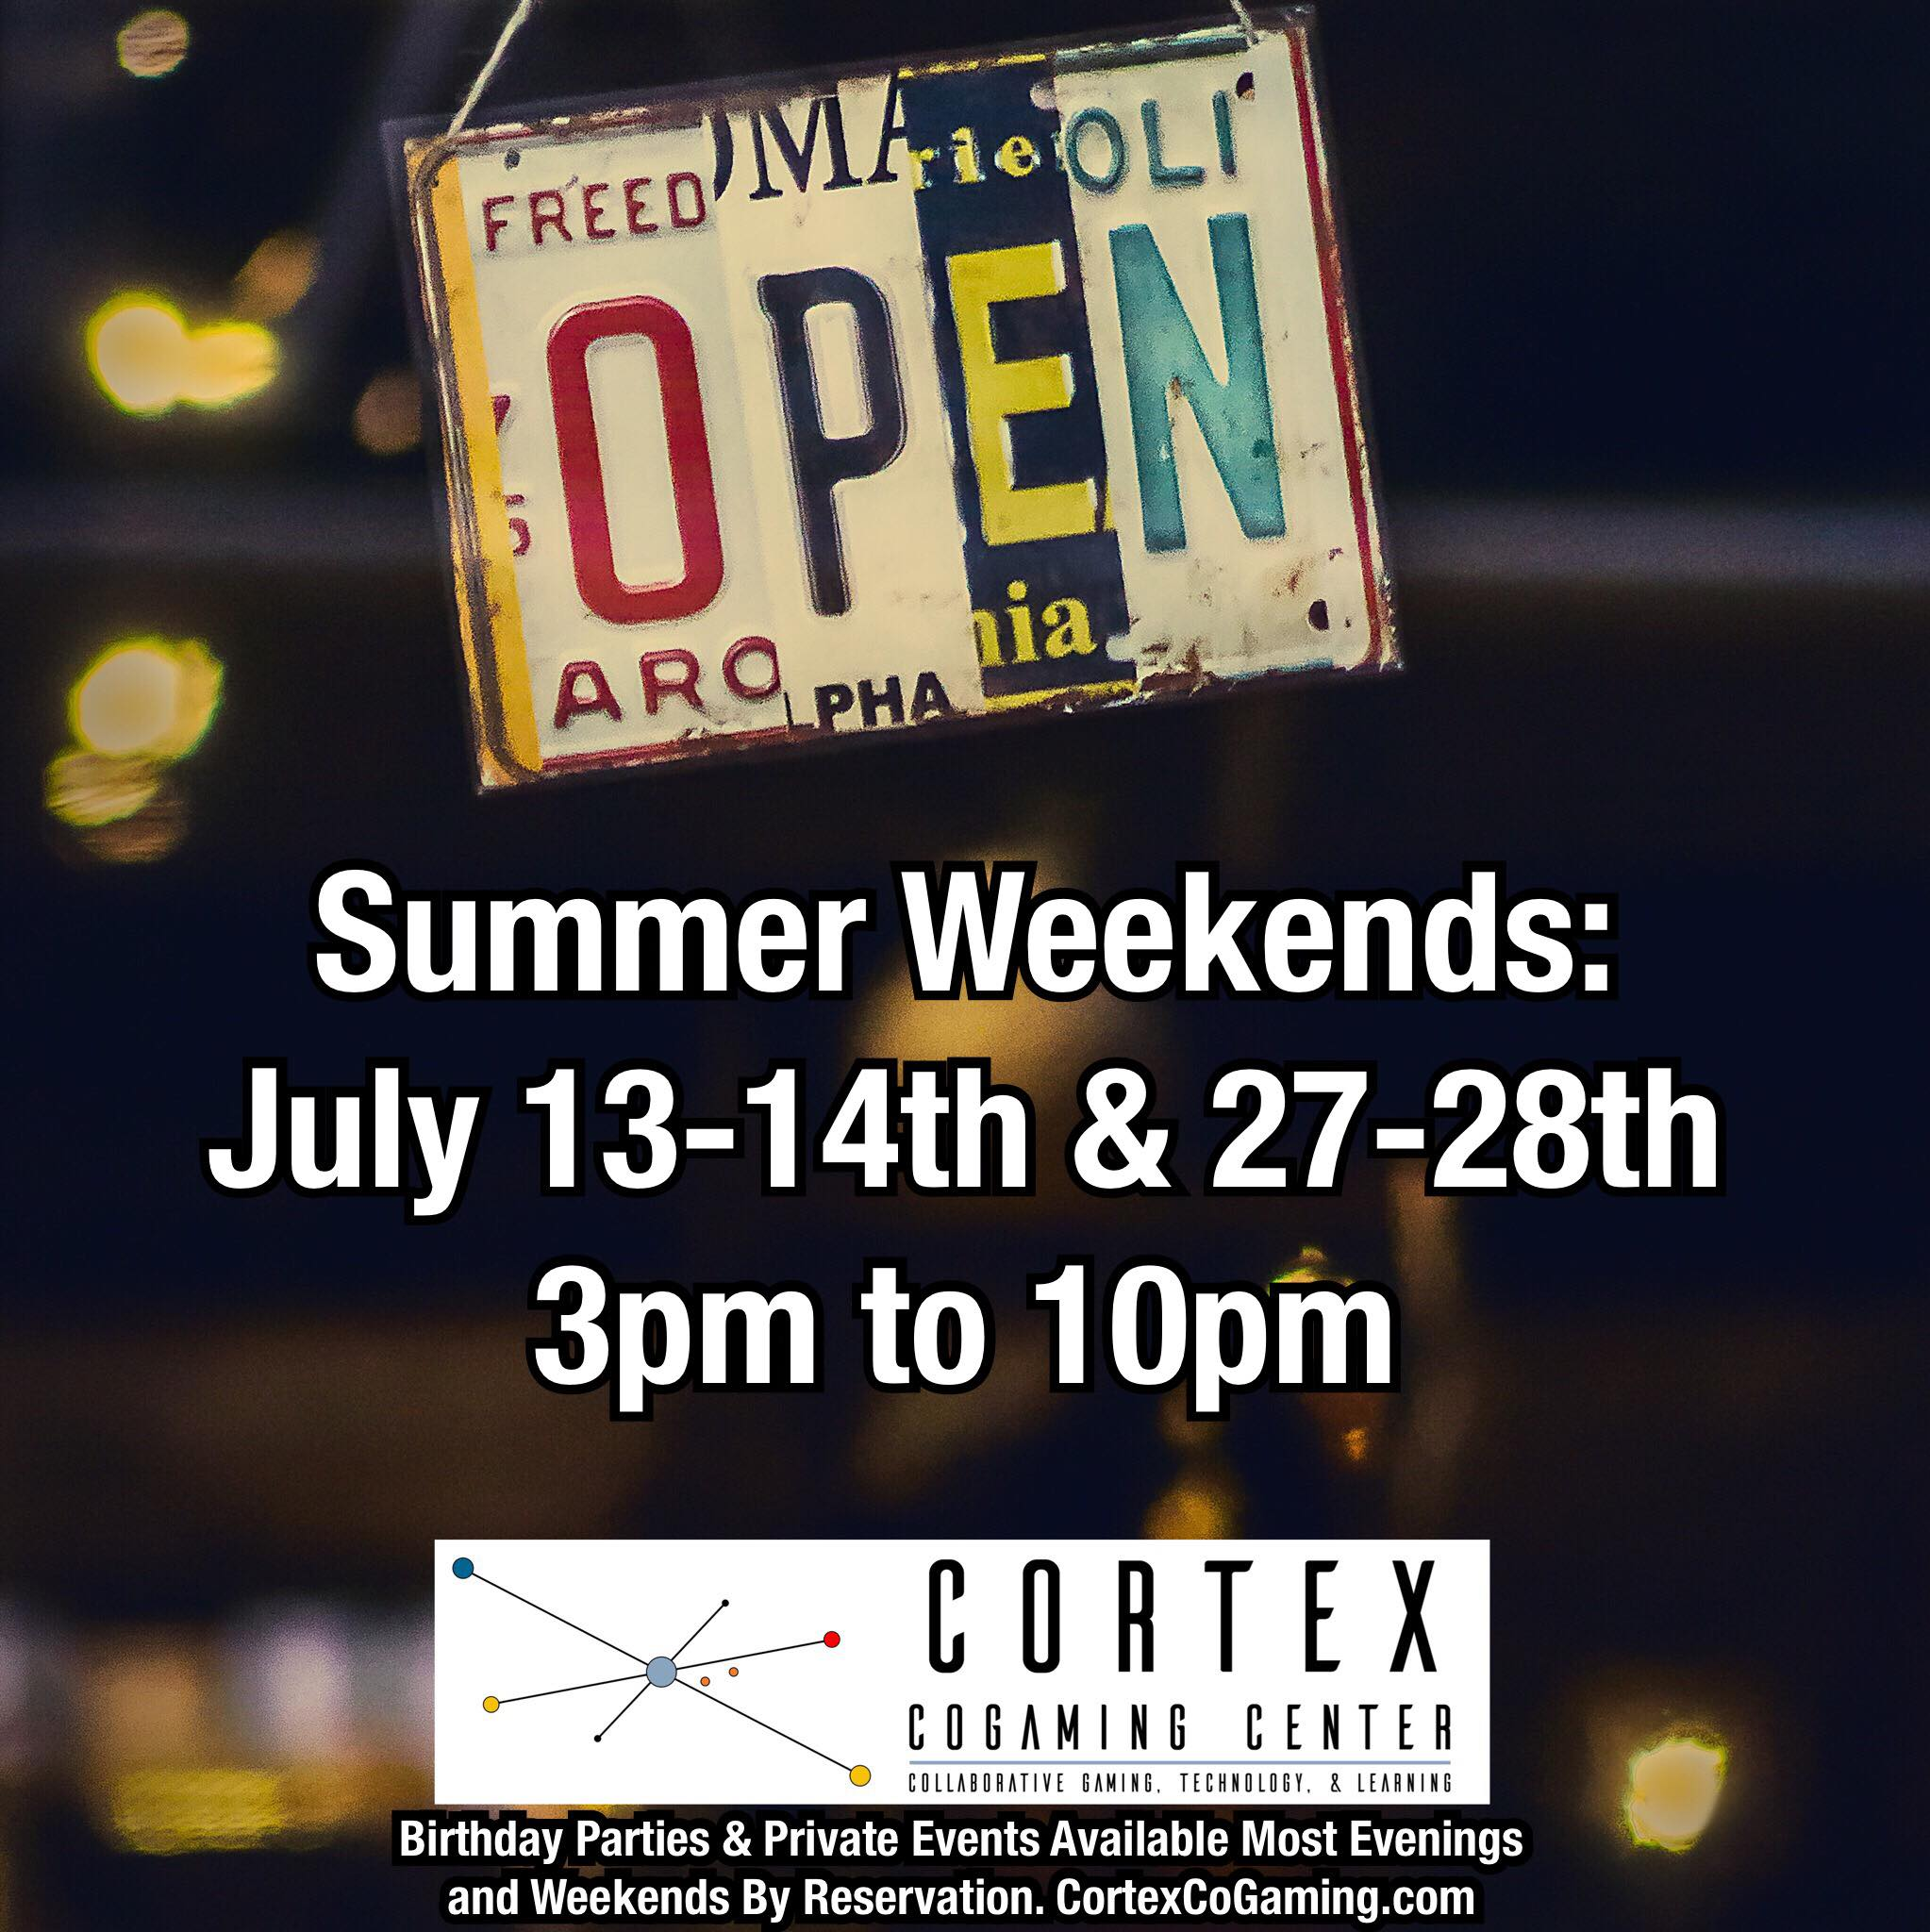 CORTEX COGAMING CENTER (AT FUQUAY COWORKING) ANNOUNCES SUMMER GAMING SCHEDULE